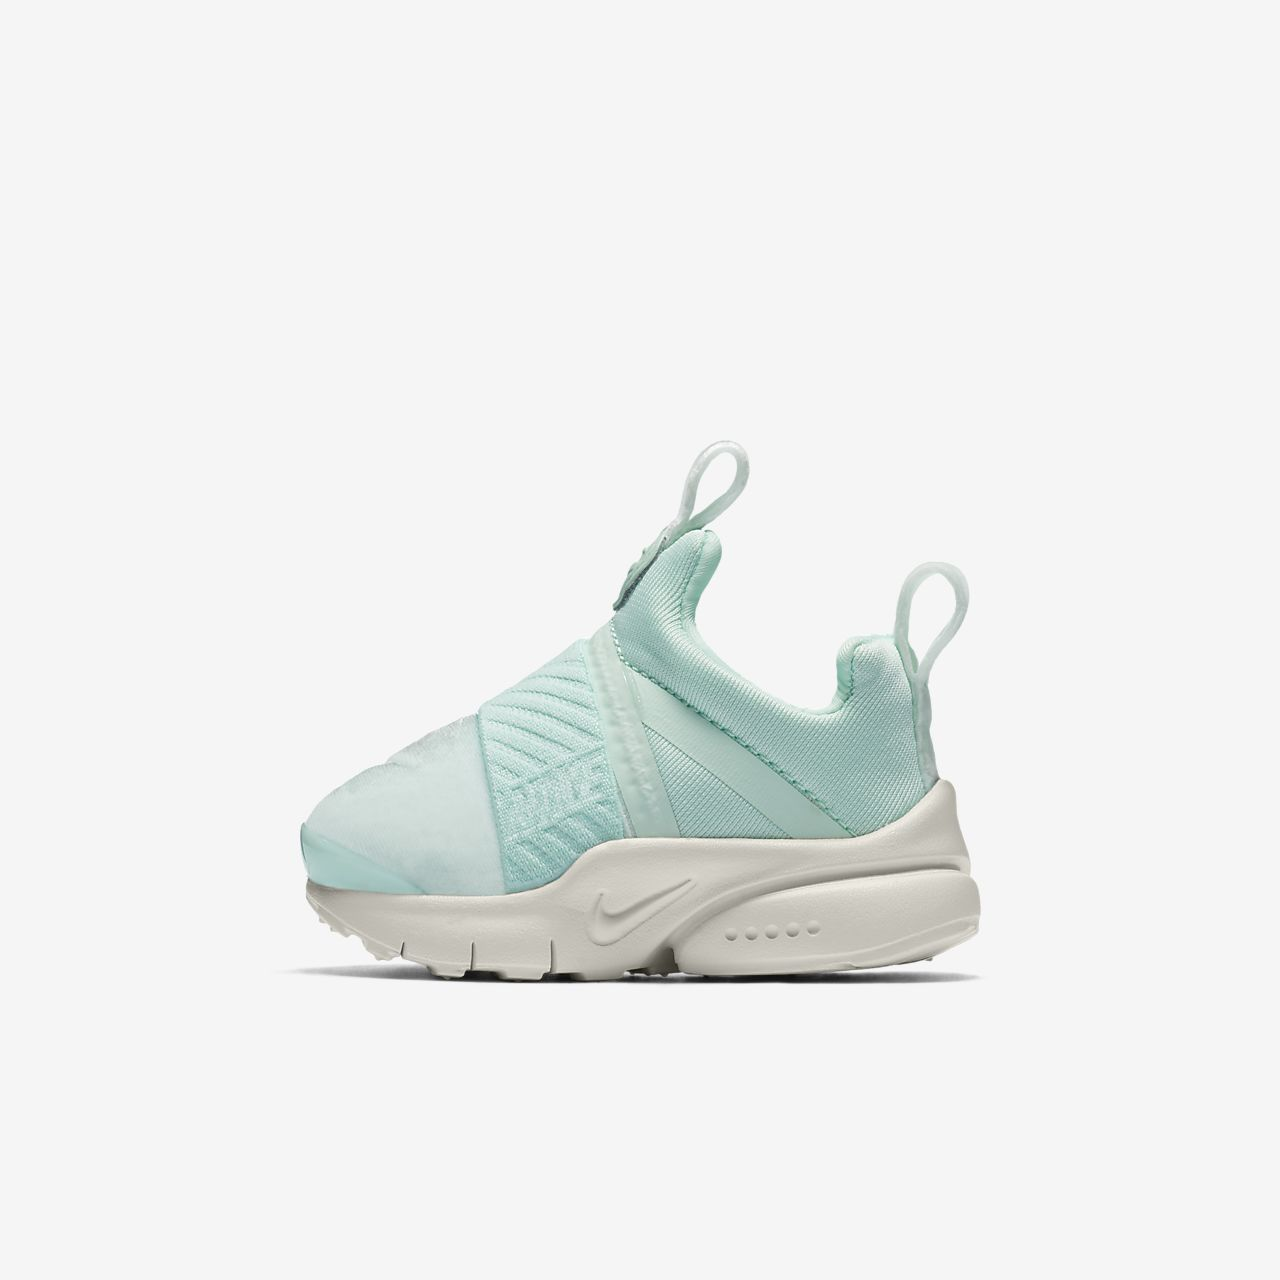 3eea234021b1 Nike Presto Extreme SE Infant Toddler Shoe